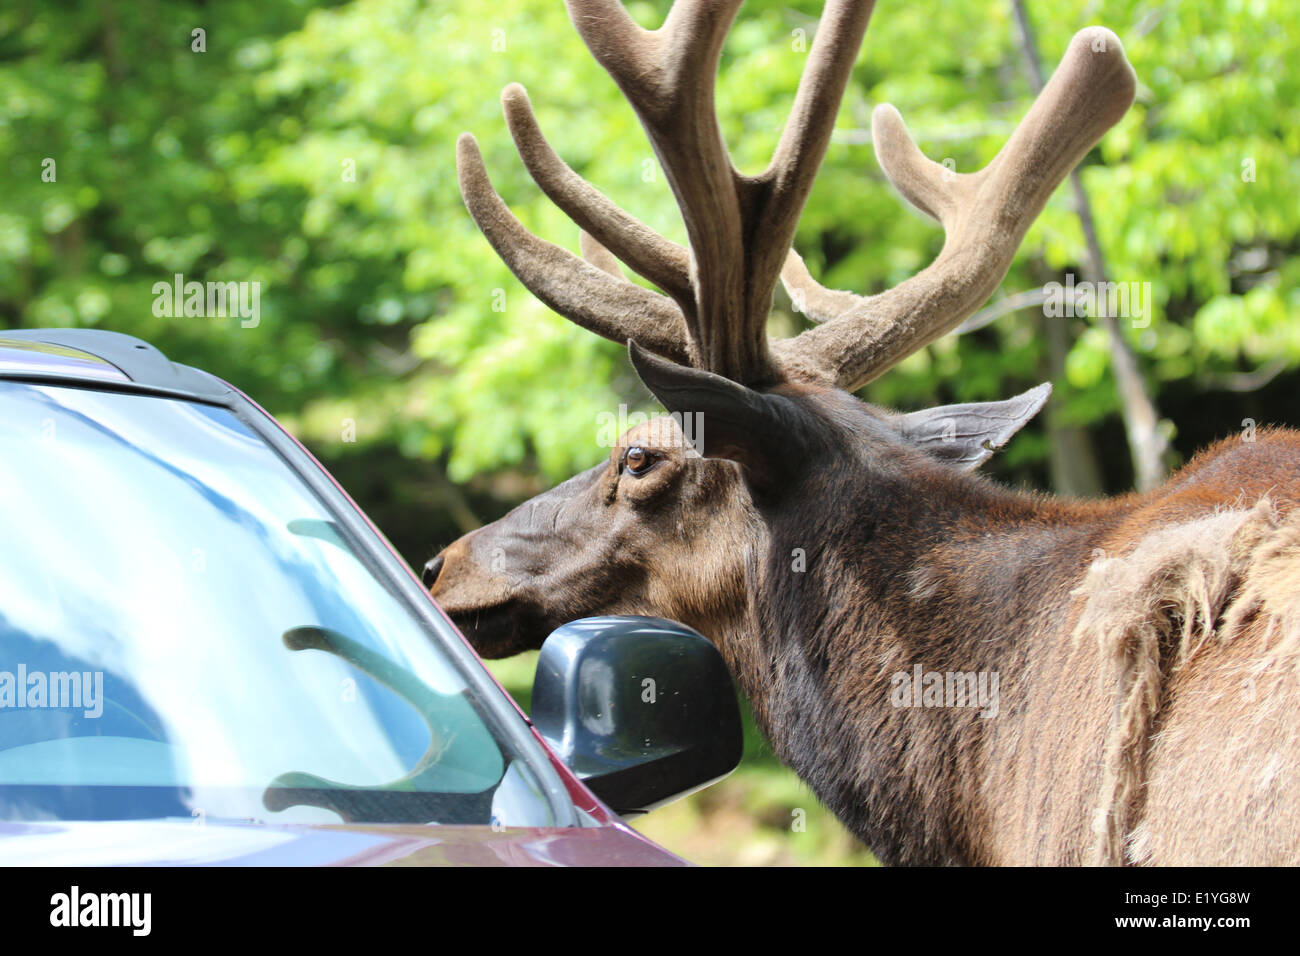 Deer with horns eating from the car window Stock Photo